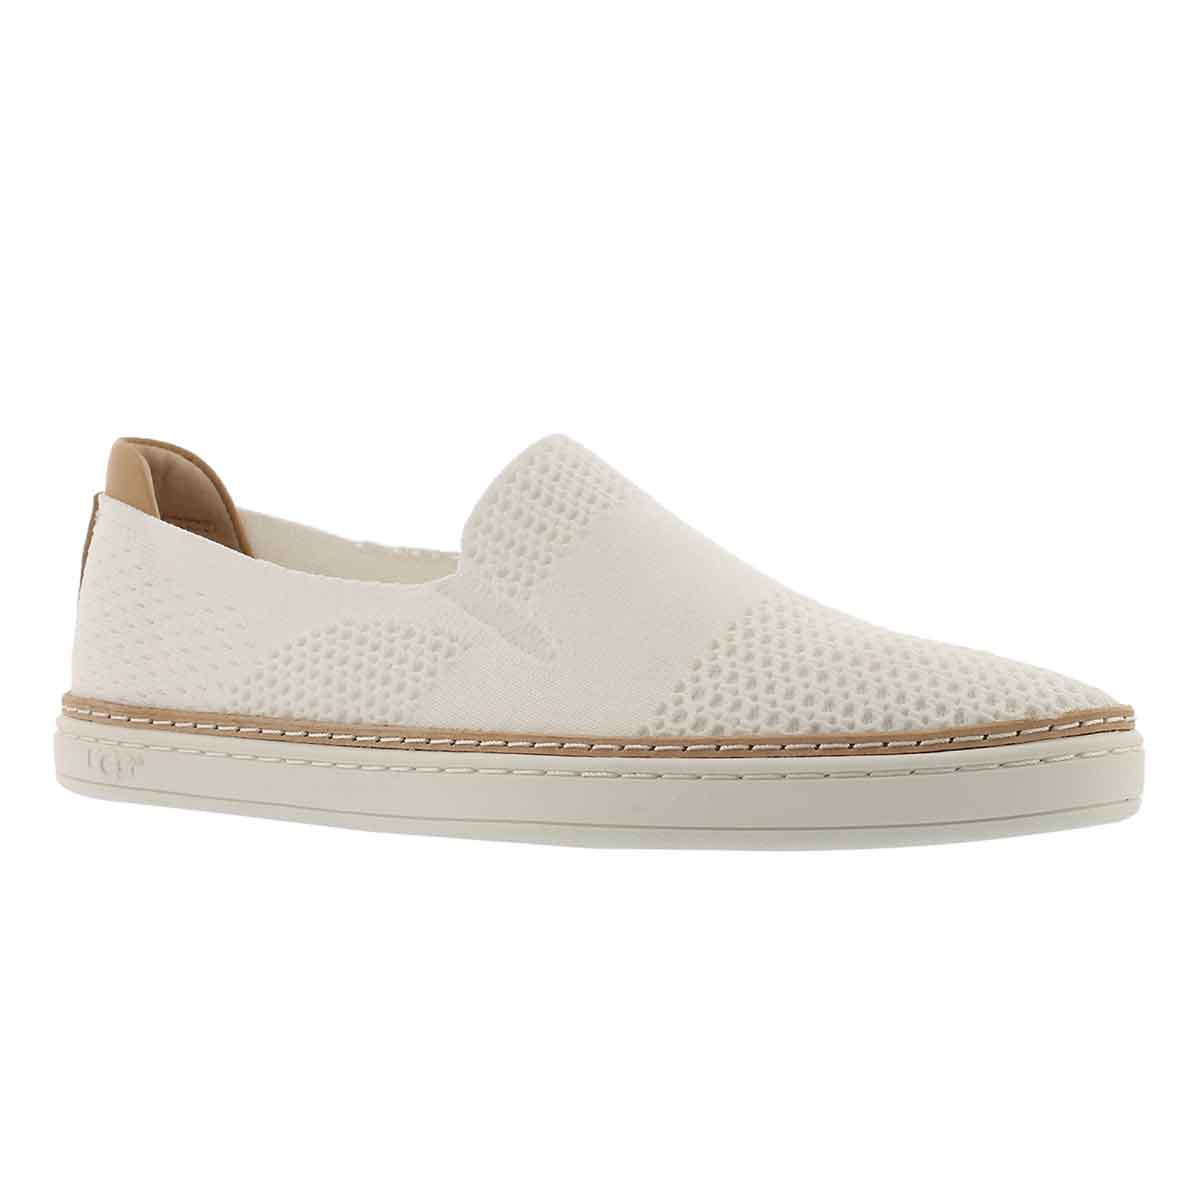 85f83038393 UGG Women's SAMMY white casual slip on shoes | Softmoc.com